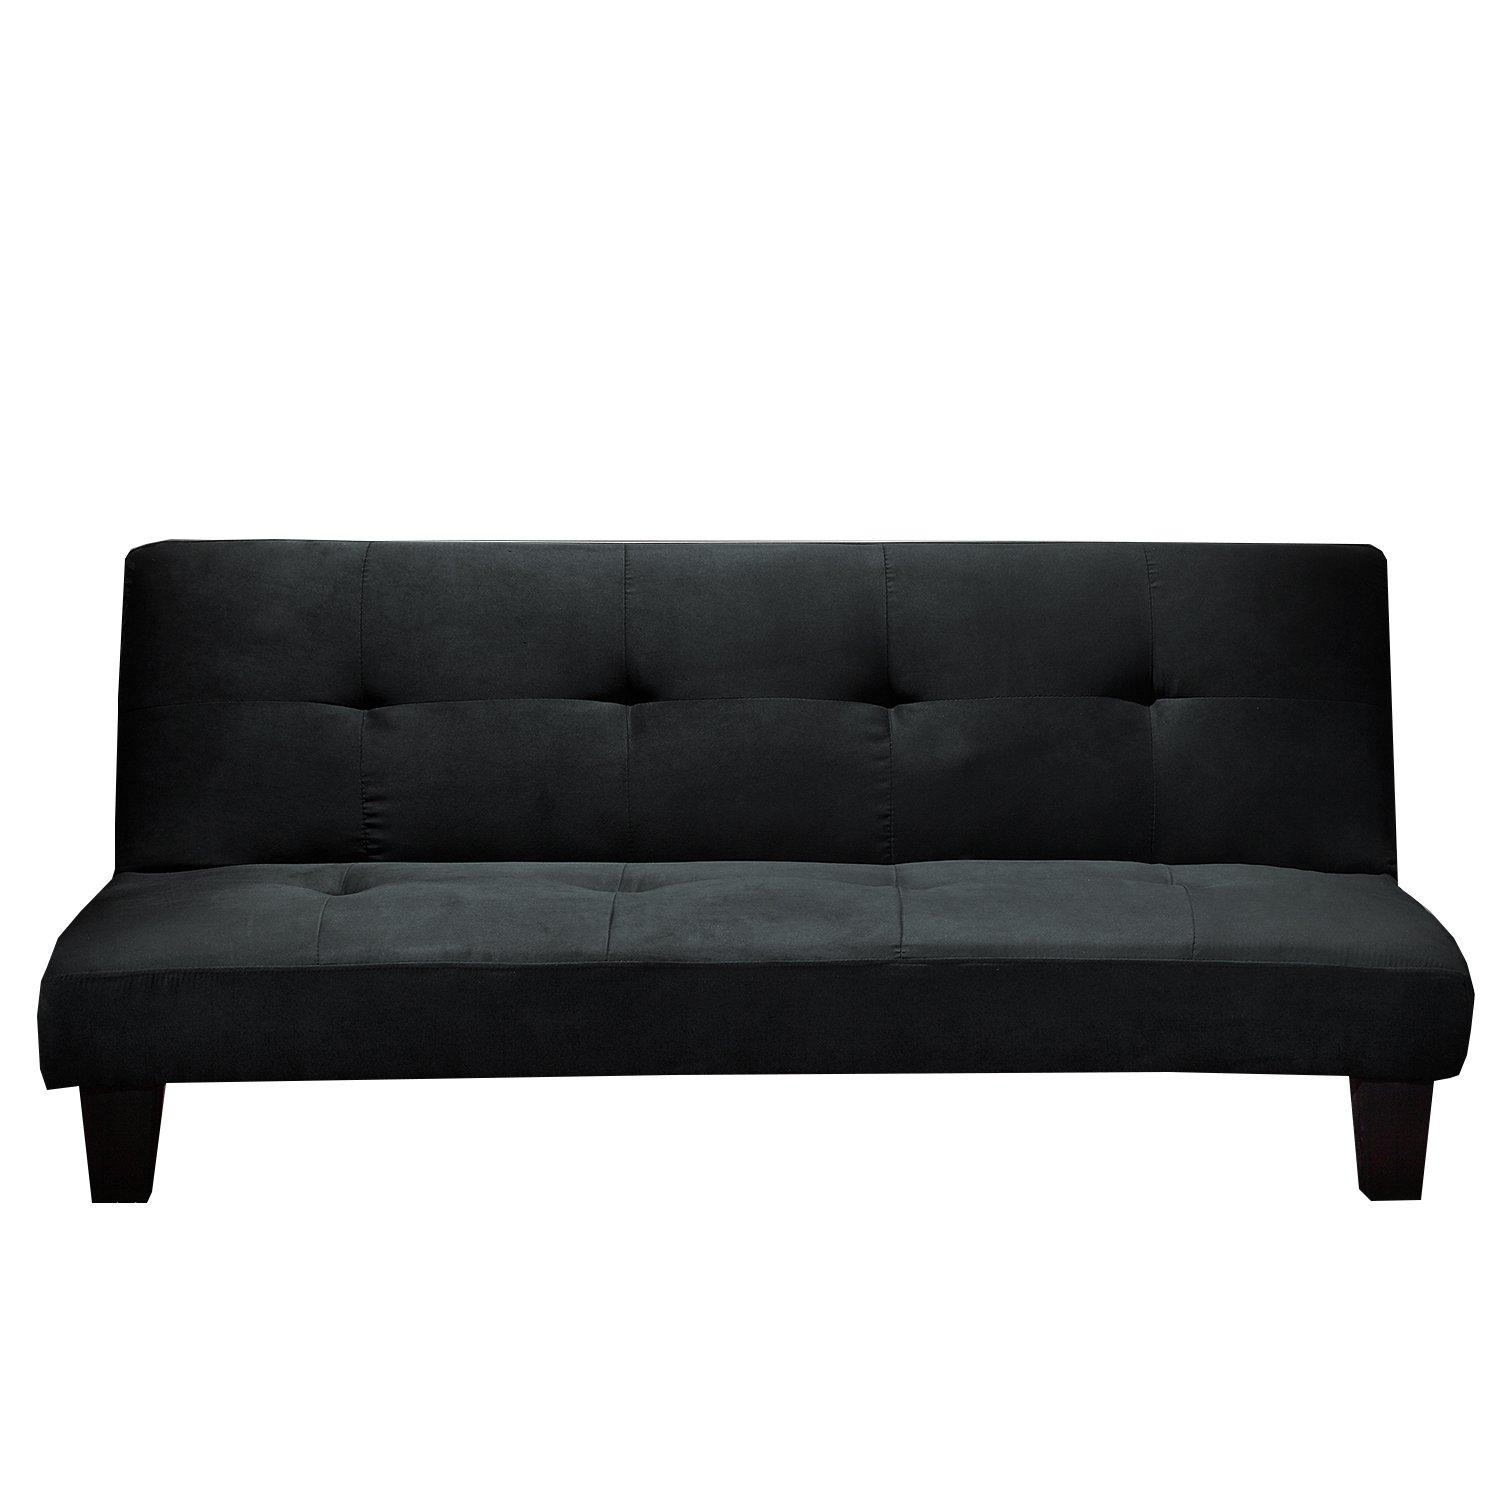 Living Room: Ava Velvet Tufted Sleeper Sofa | Contemporary Futon Pertaining To Ava Velvet Tufted Sleeper Sofas (Image 9 of 20)